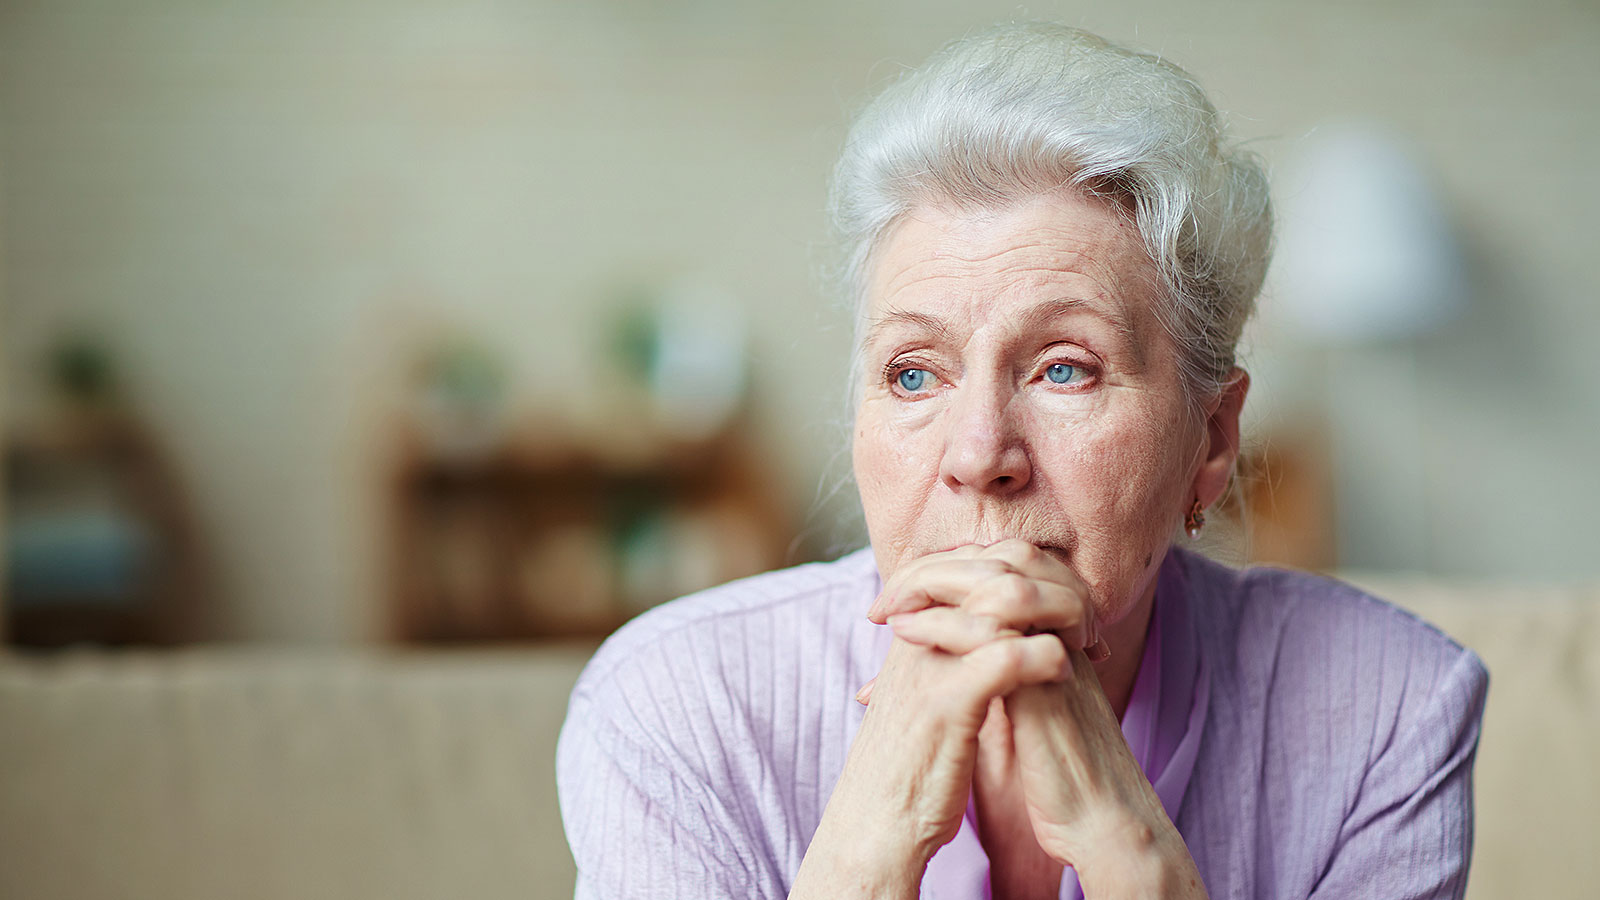 Research reveals the shocking, most common source of financial abuse against the elderly